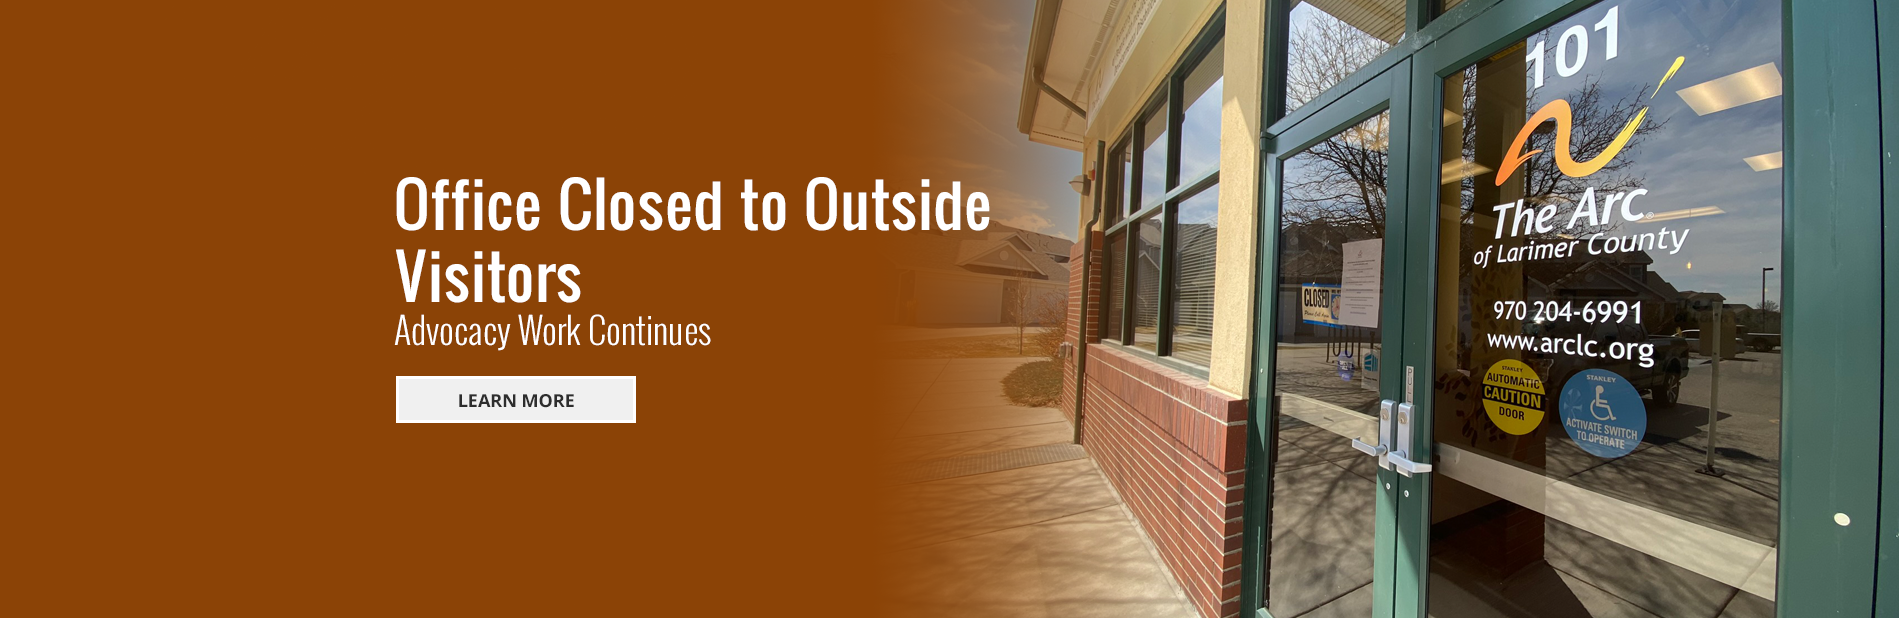 Office Closed to Outside Visitors - Advocacy Work Continues  - Follow the Link to Learn More